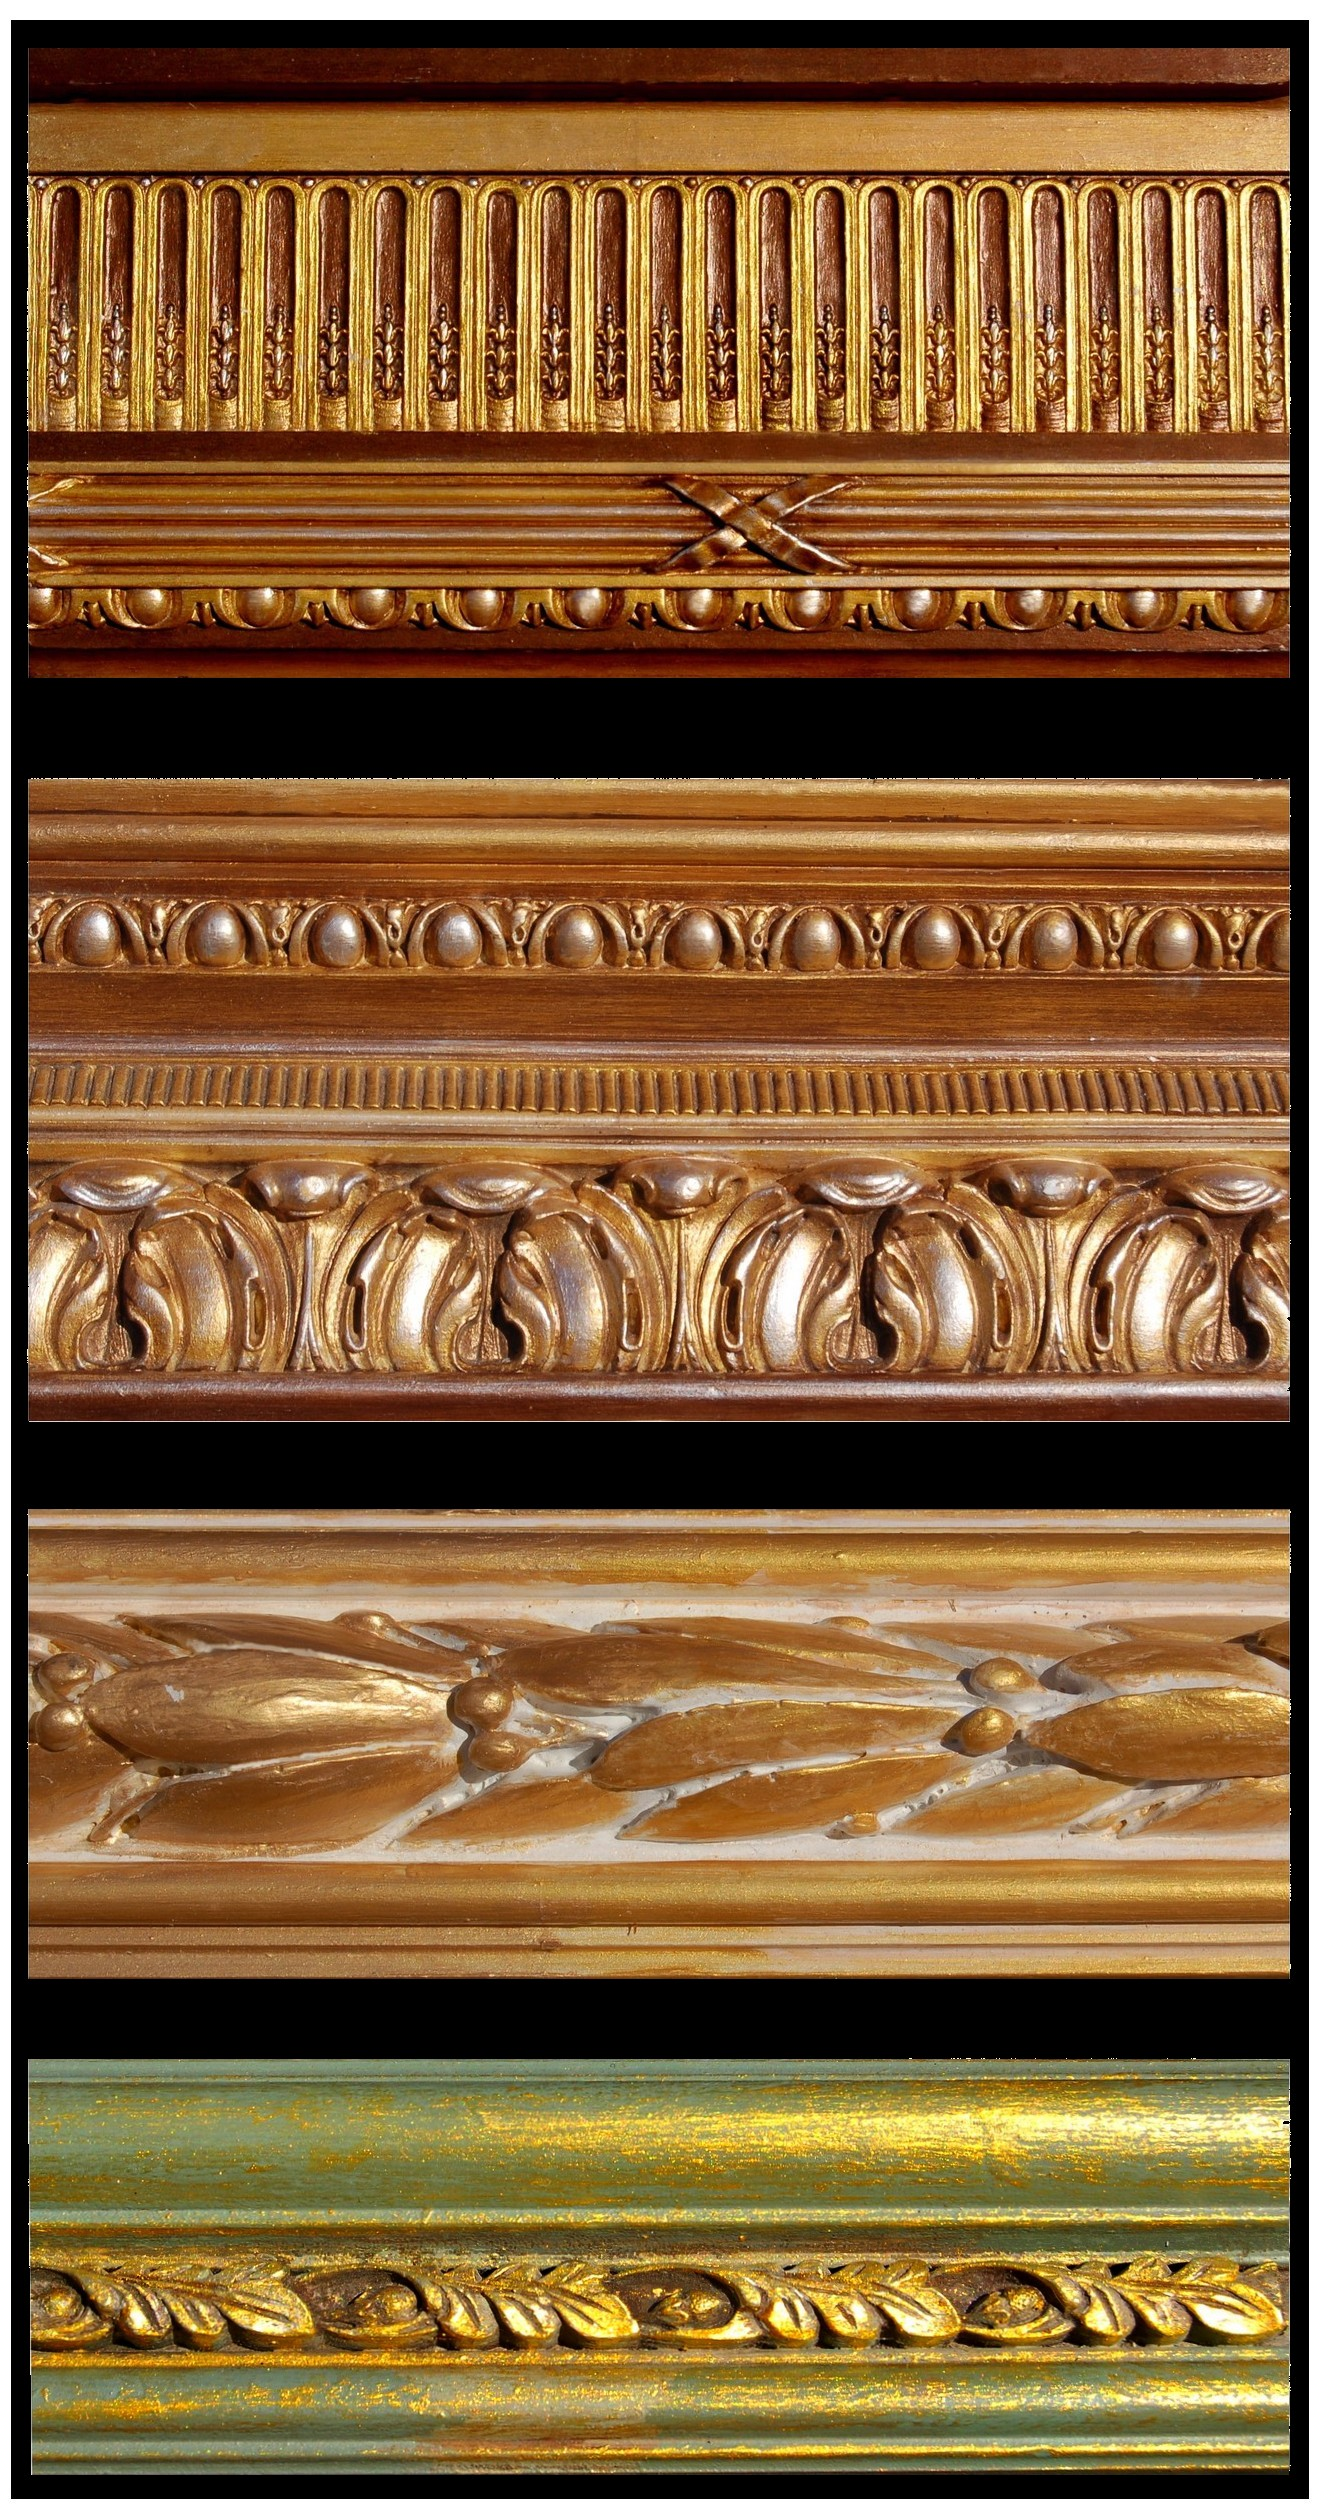 Molding and trim treatments